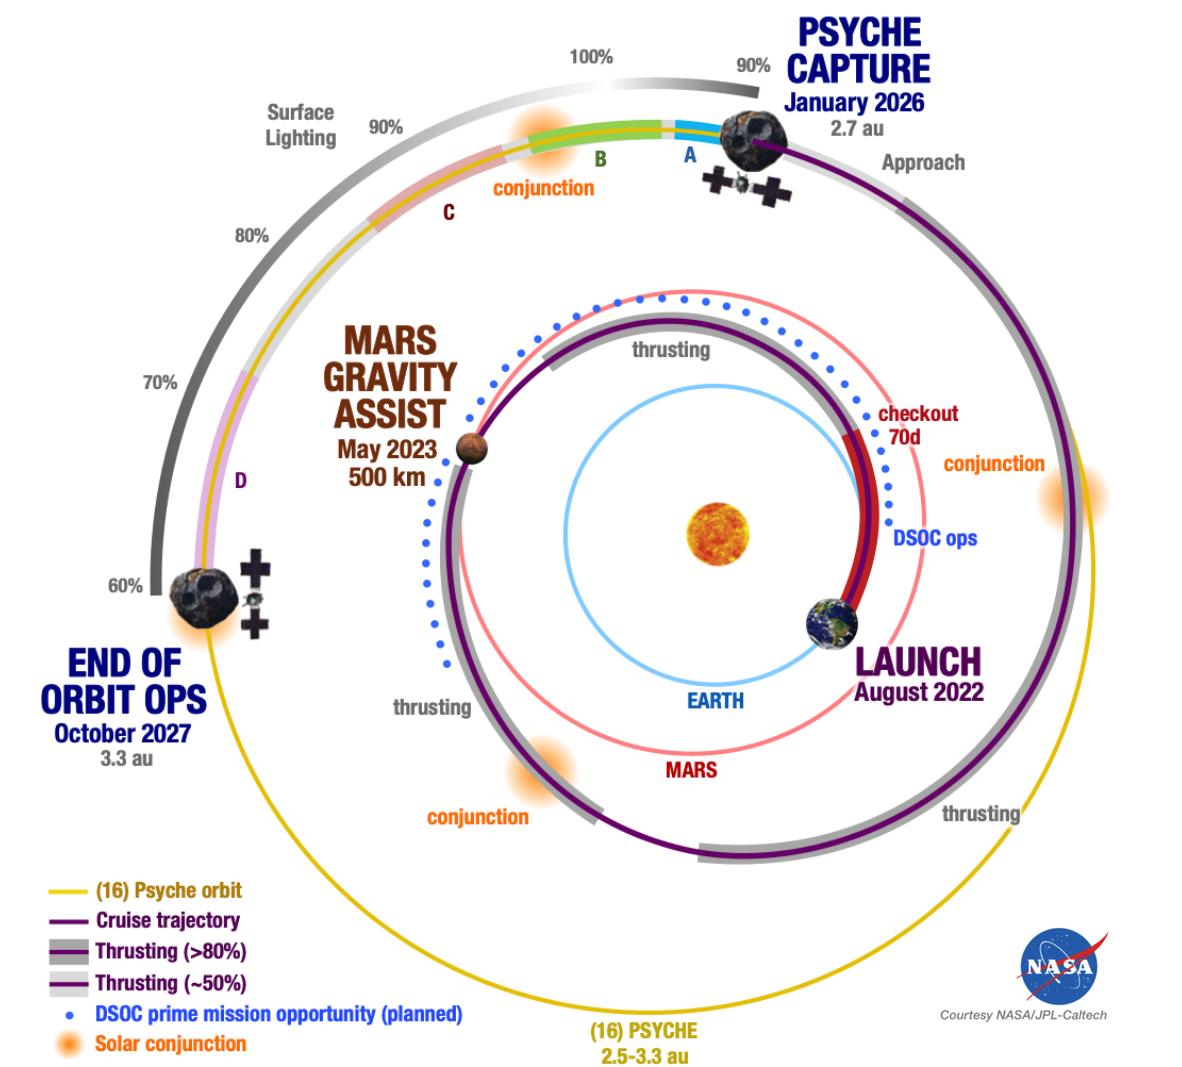 Psyche Mission Overview